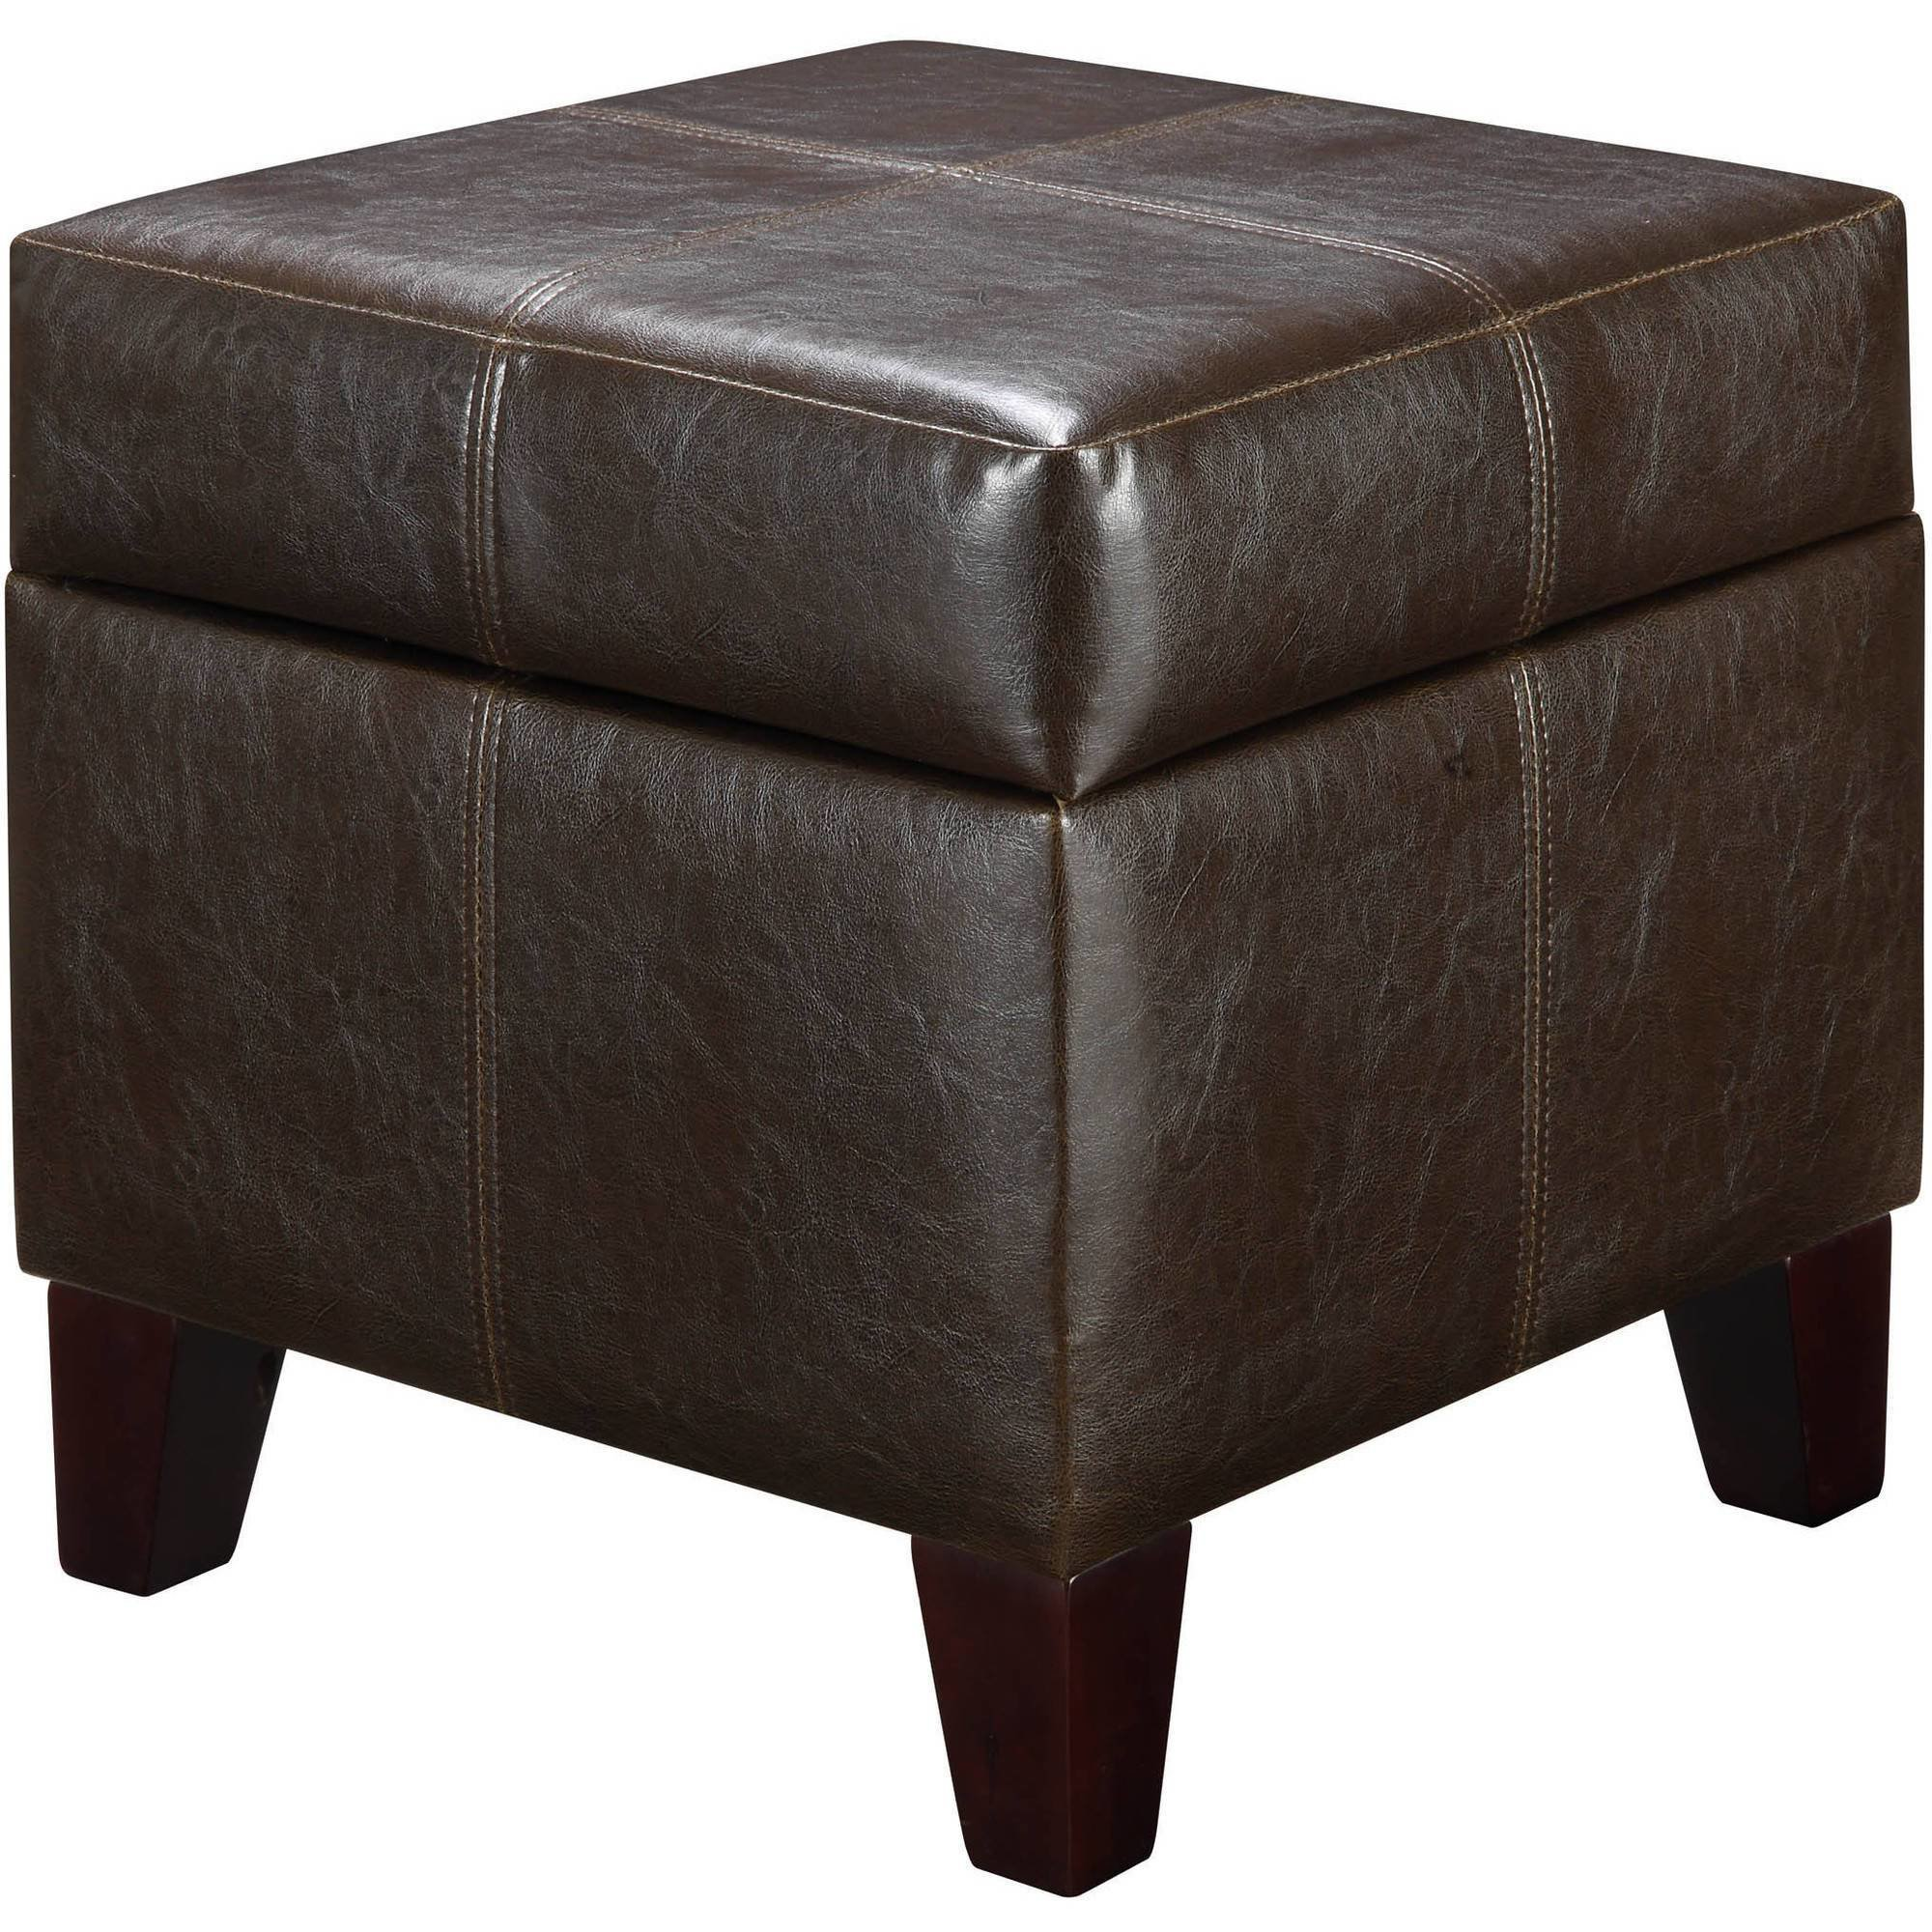 Best Brown Leather Storage Ottoman Comfort Living Room Bedroom With Pictures